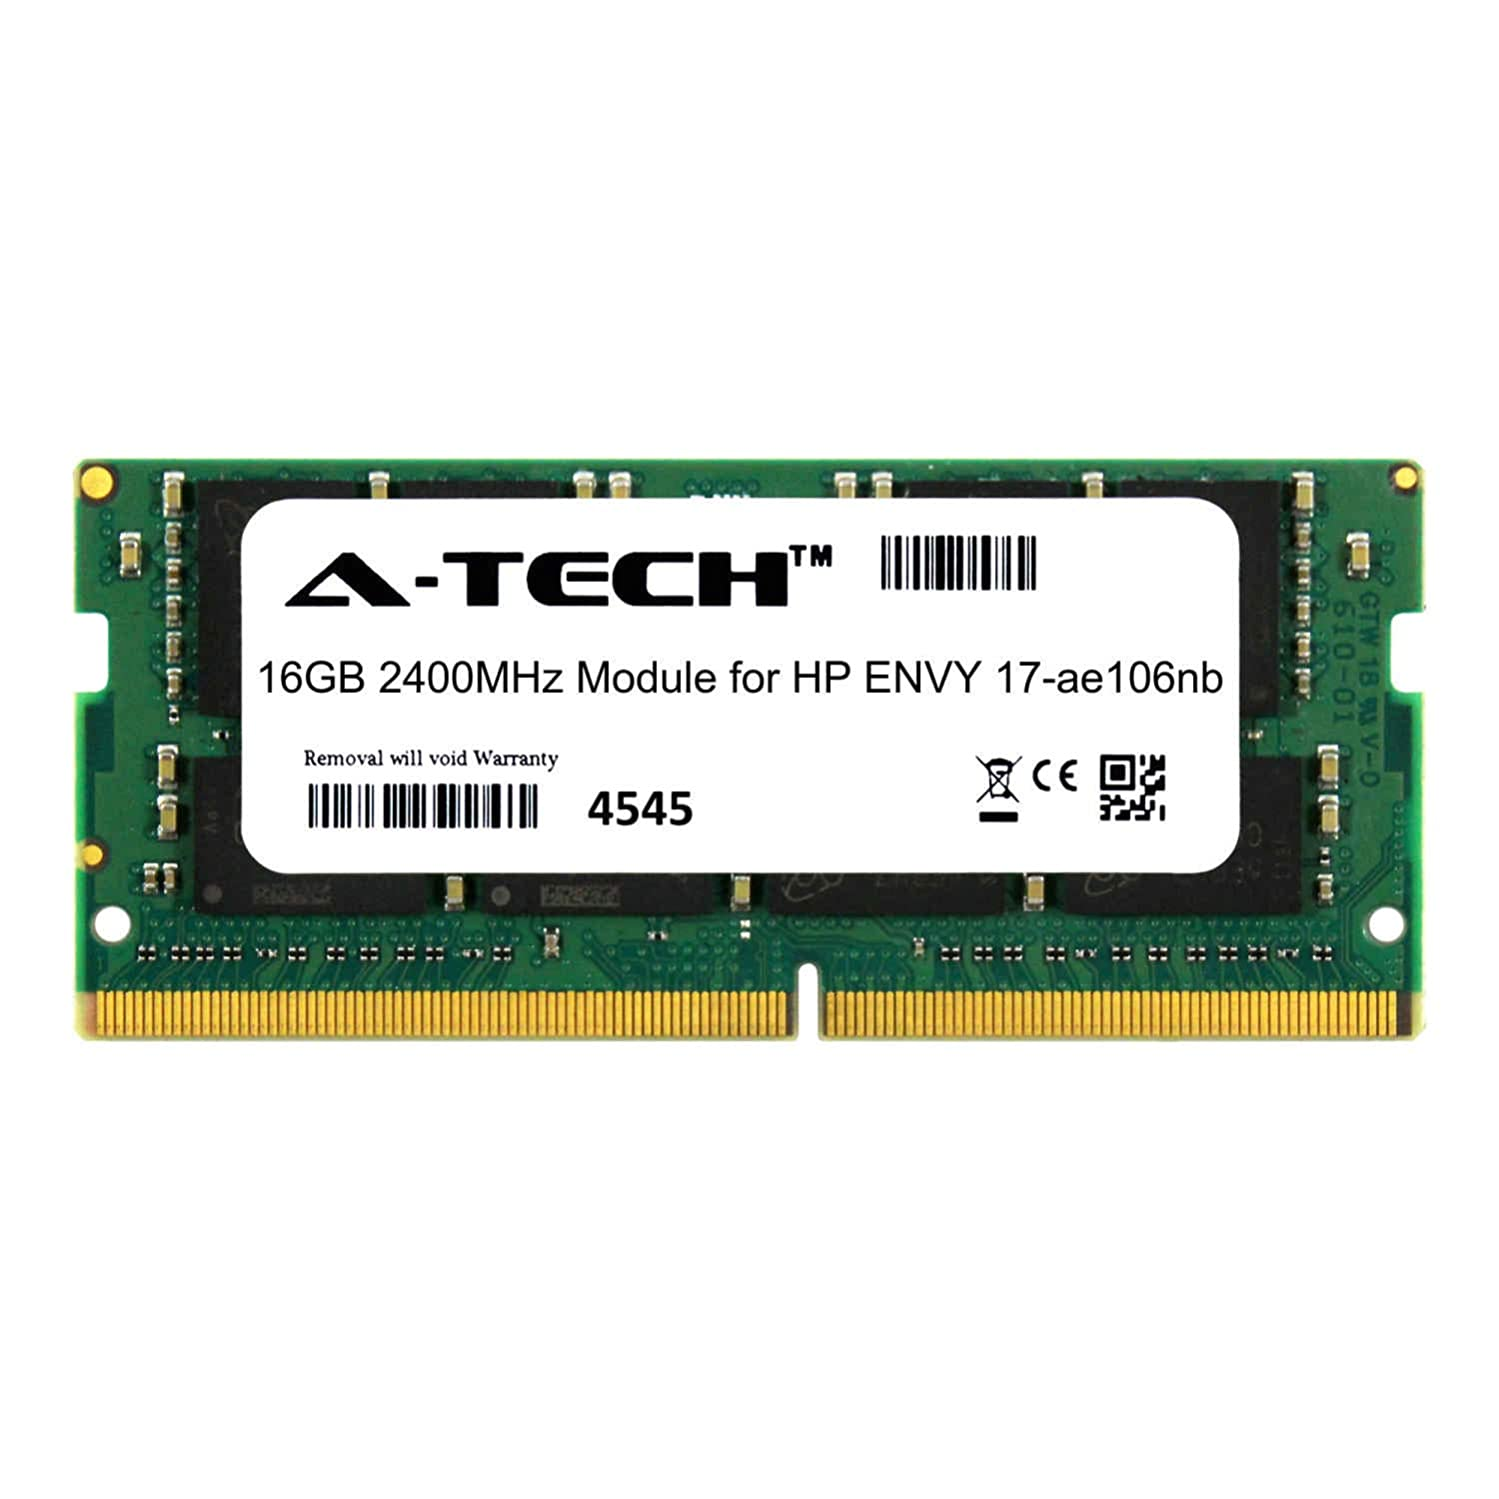 A-Tech 16GB Module for HP Envy 17-ae106nb Laptop & Notebook Compatible DDR4 2400Mhz Memory Ram (ATMS273941A25831X1)